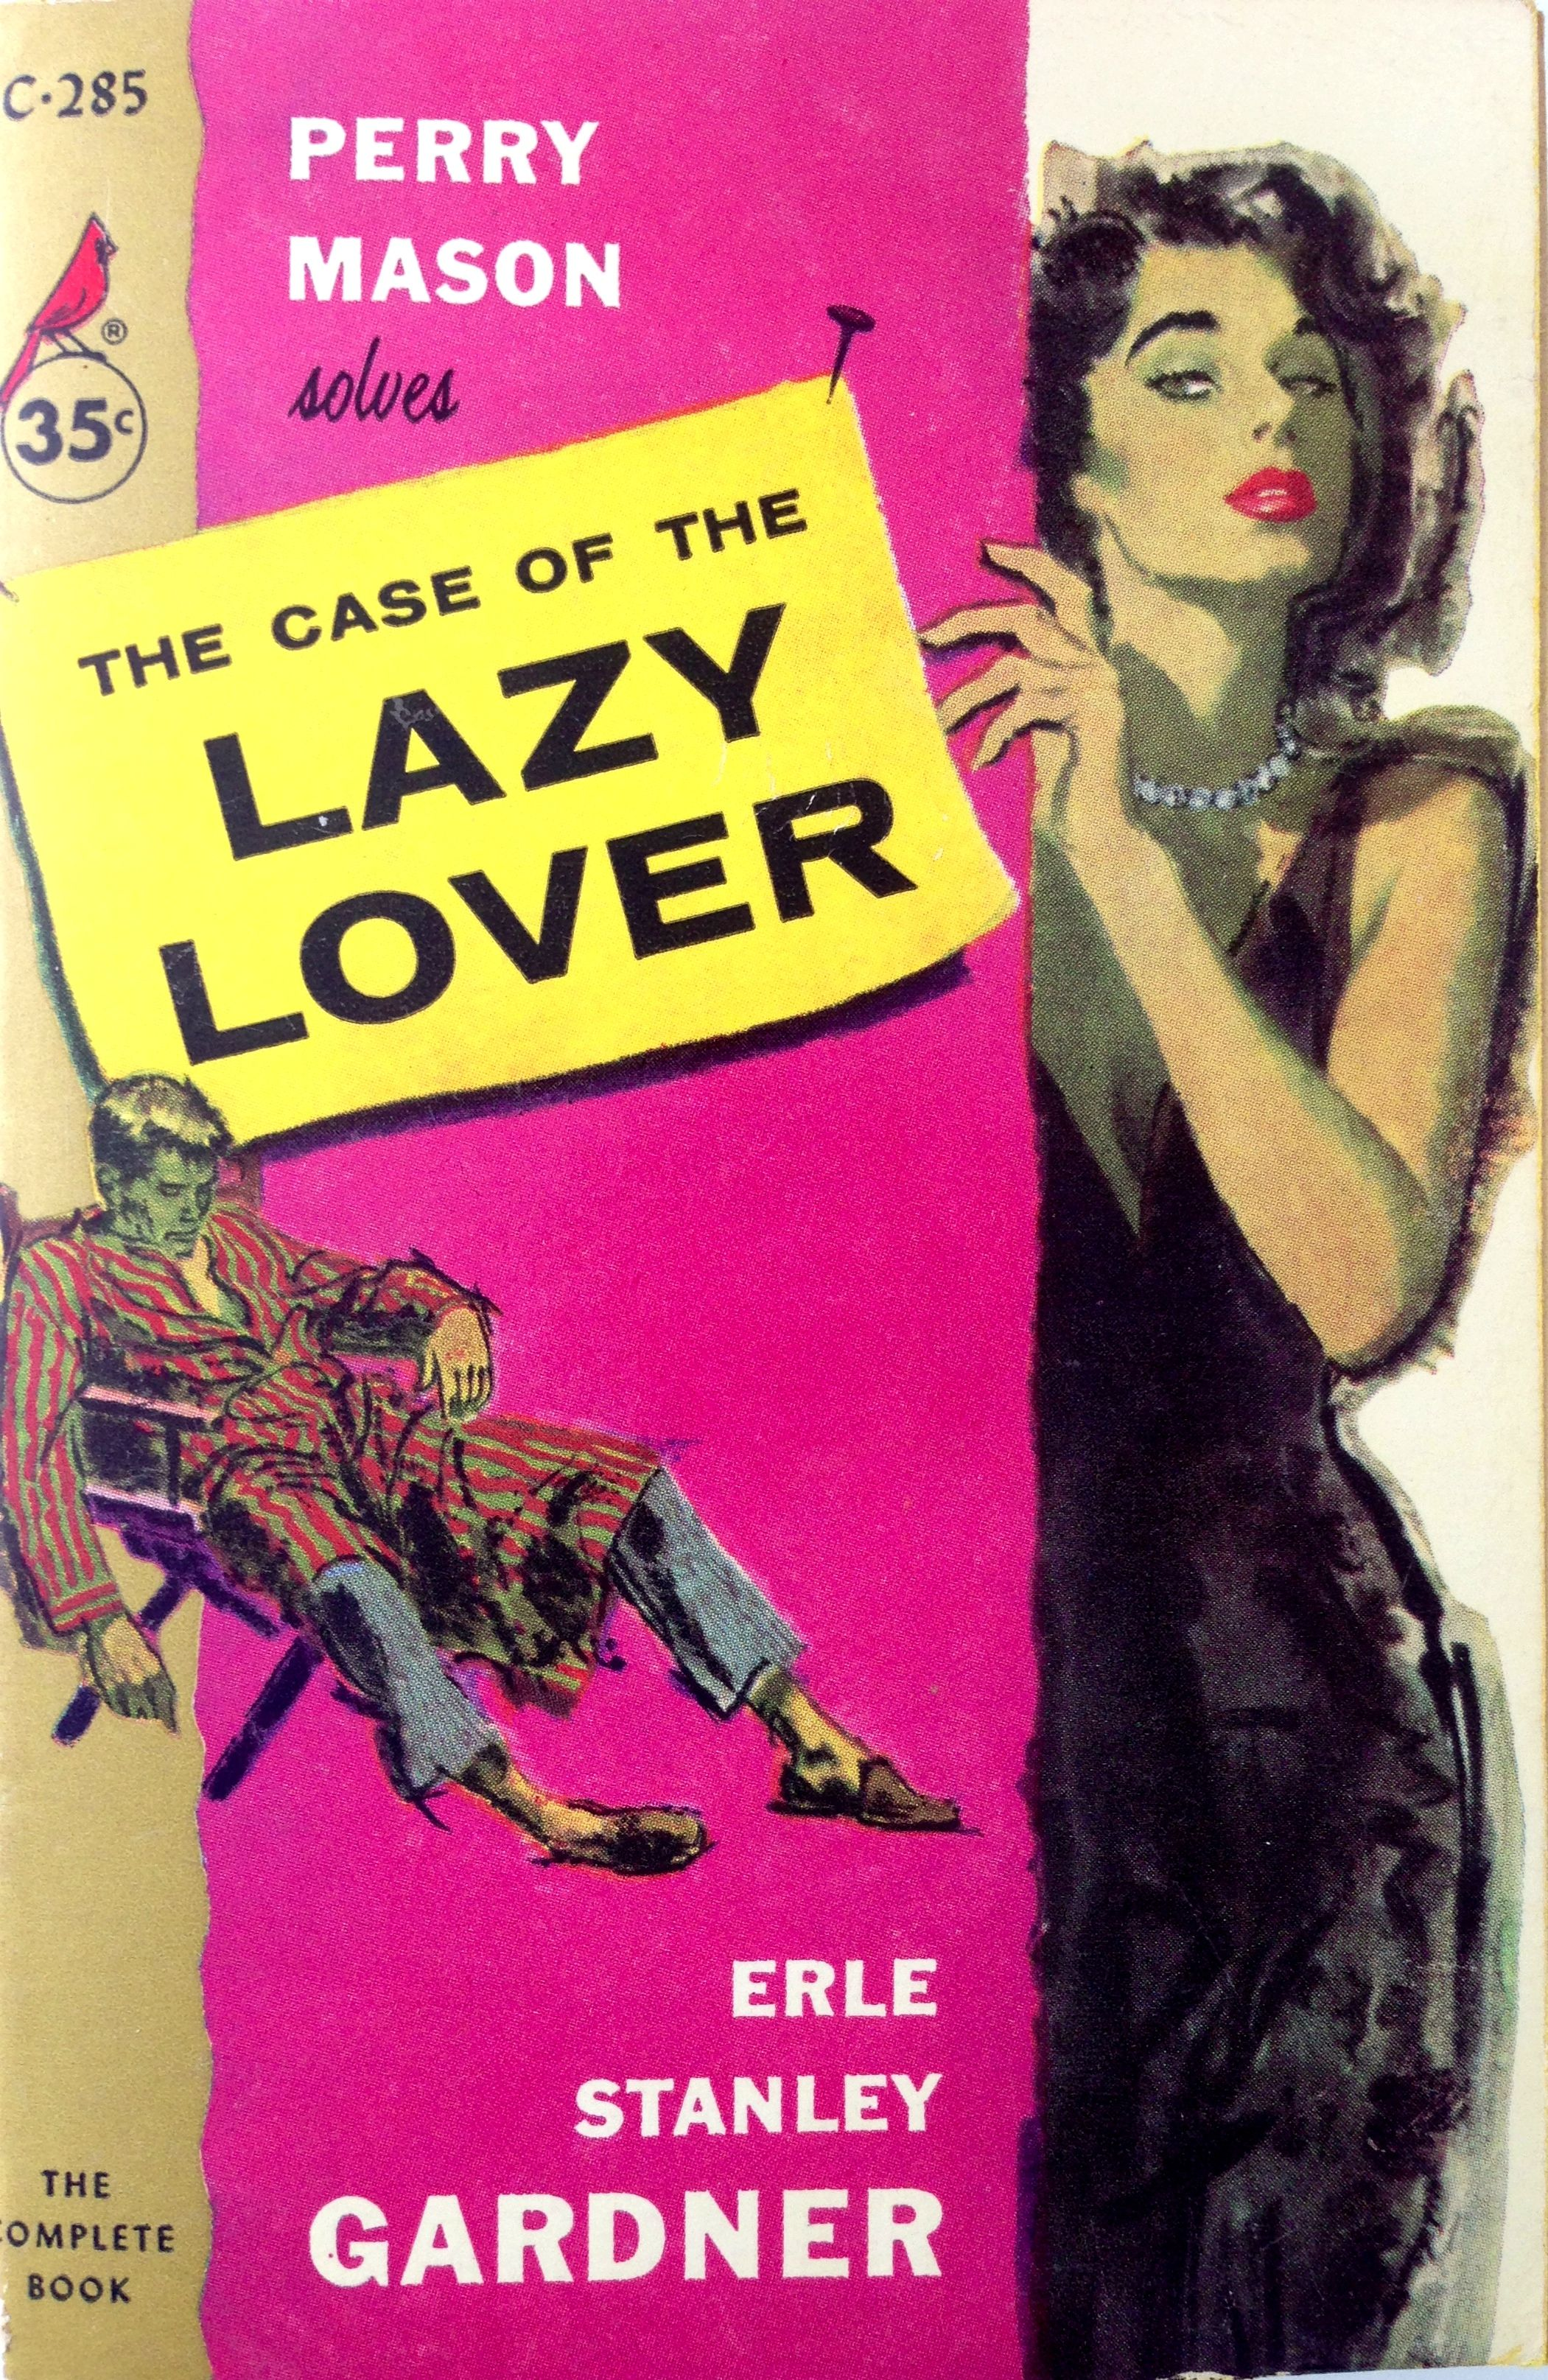 Originally Published In 1947 This Is First Cardinal Edition Pb Printed In 1958 Perry Mason Pulp Fiction Vintage Book Covers